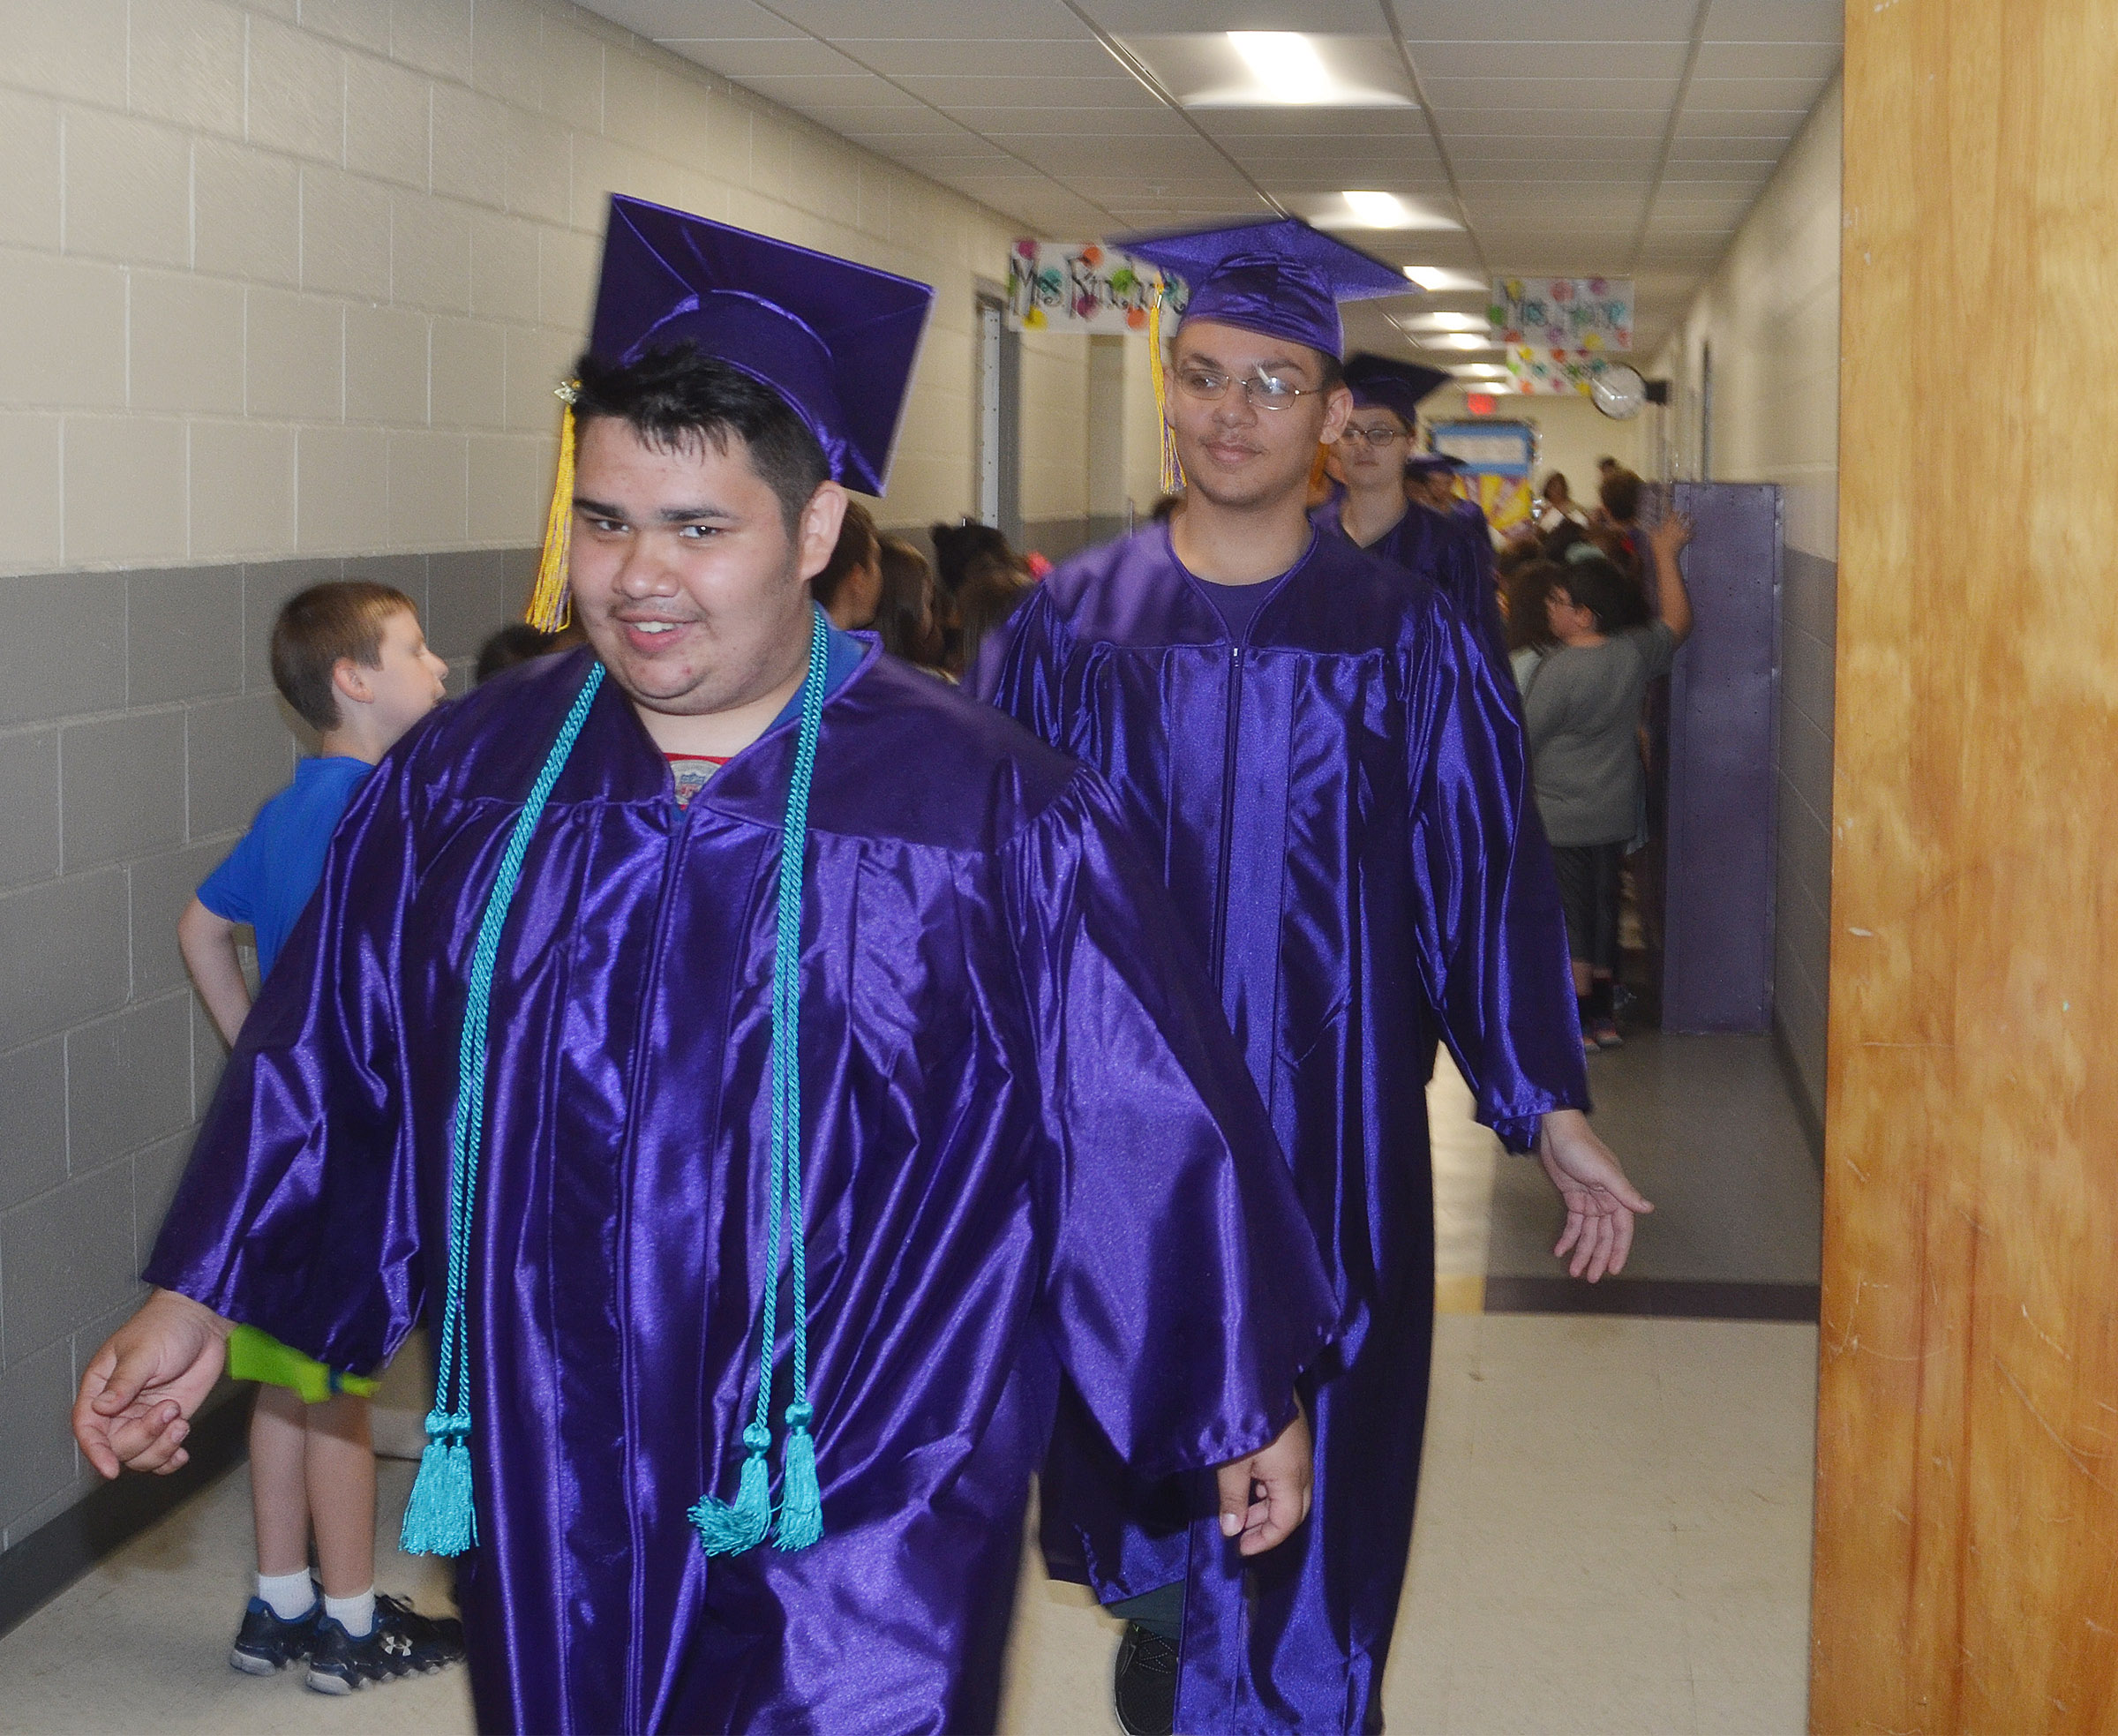 CHS senior Robert Tungate and his classmates walk down the hallways at CES.